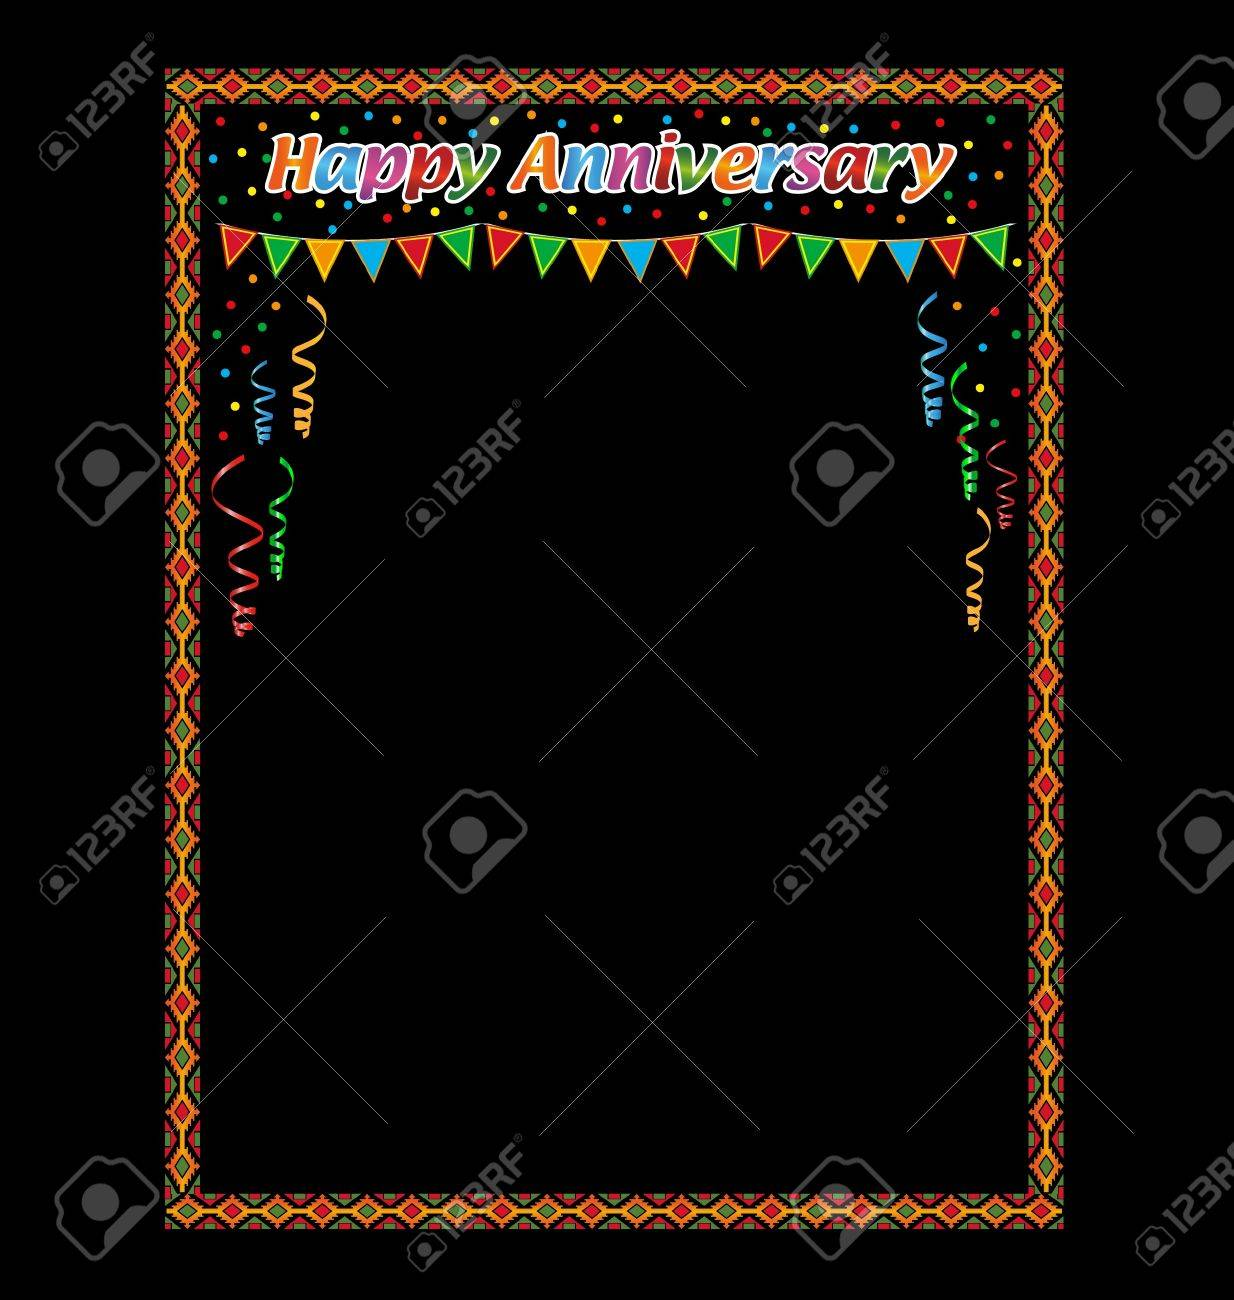 happy anniversary frame in black background stock vector 13554160